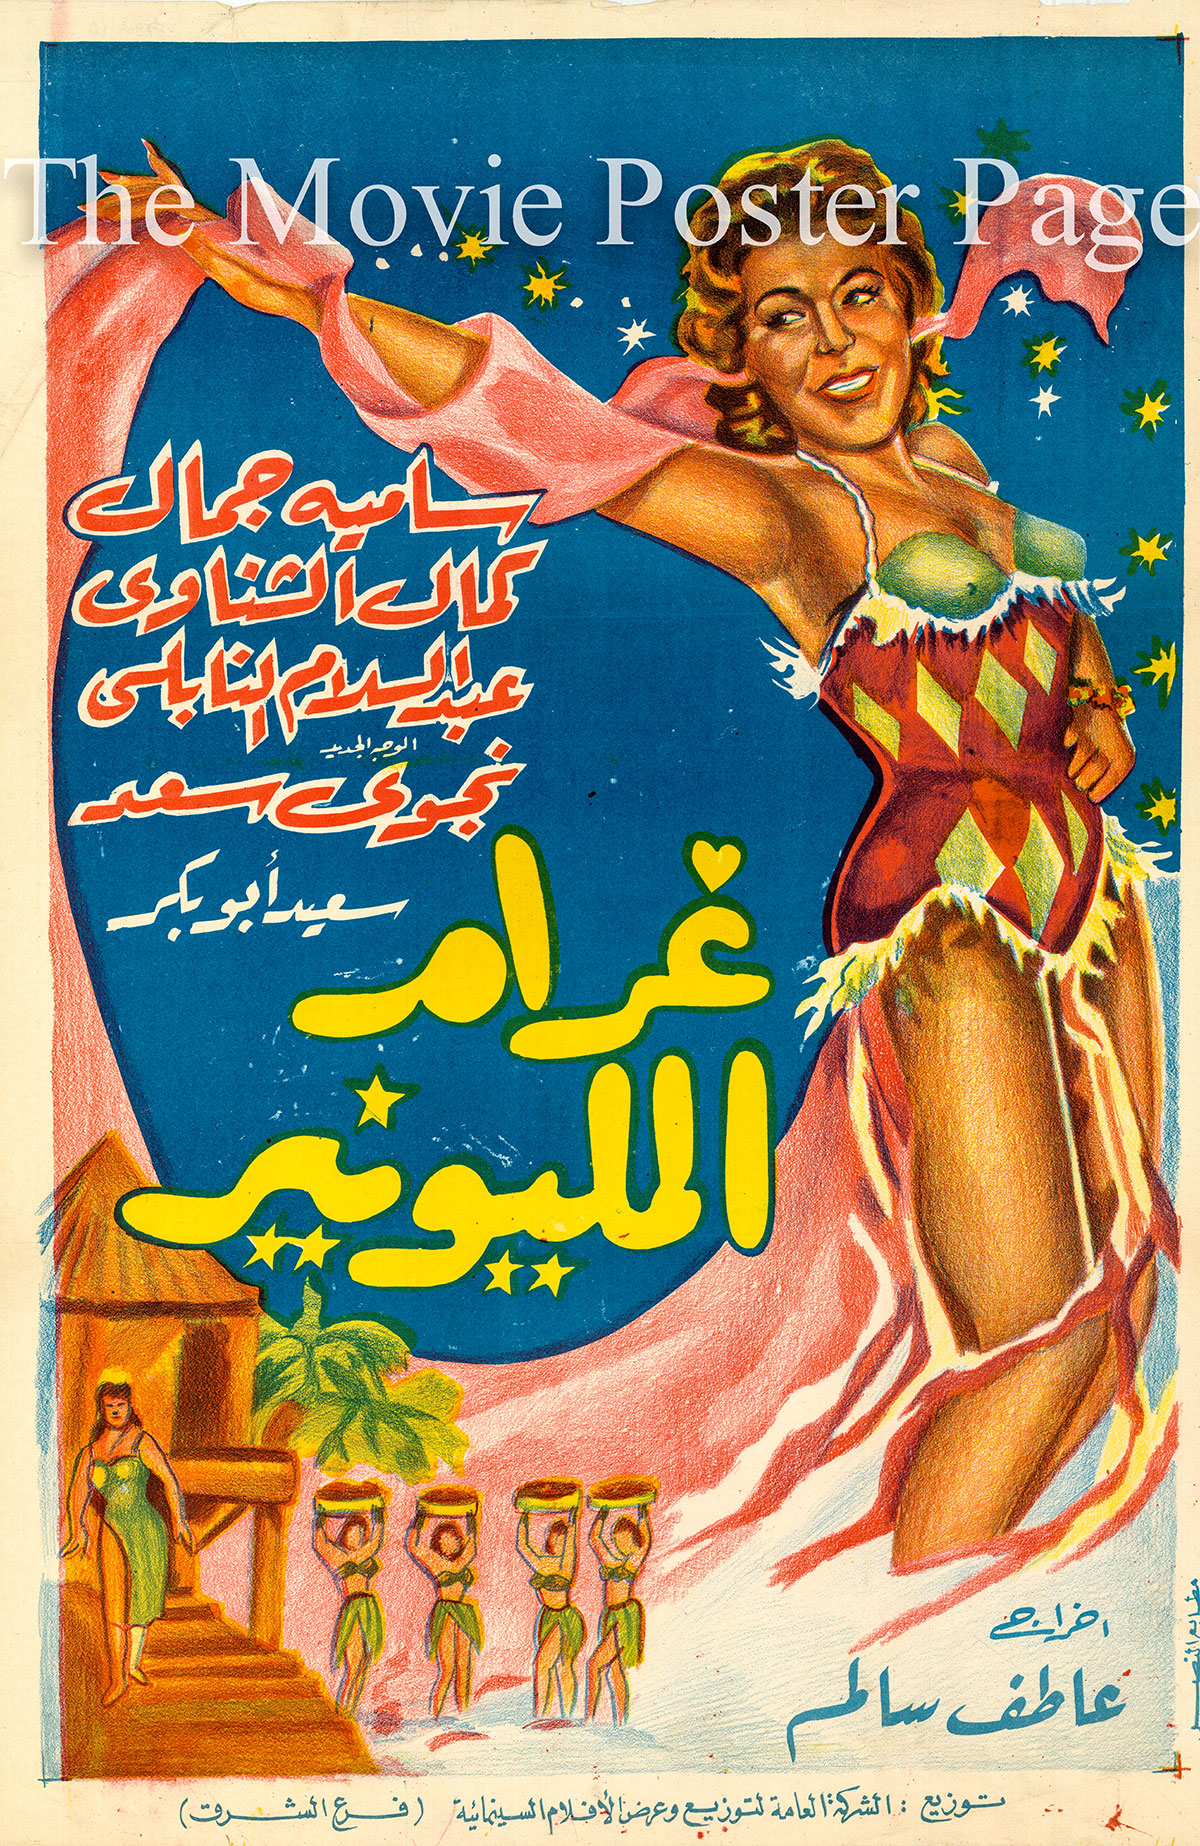 Pictured is an Egyptian promotional poster for the 1957 Atef Salem film Love of the Millionaire starring Samia Gamal.